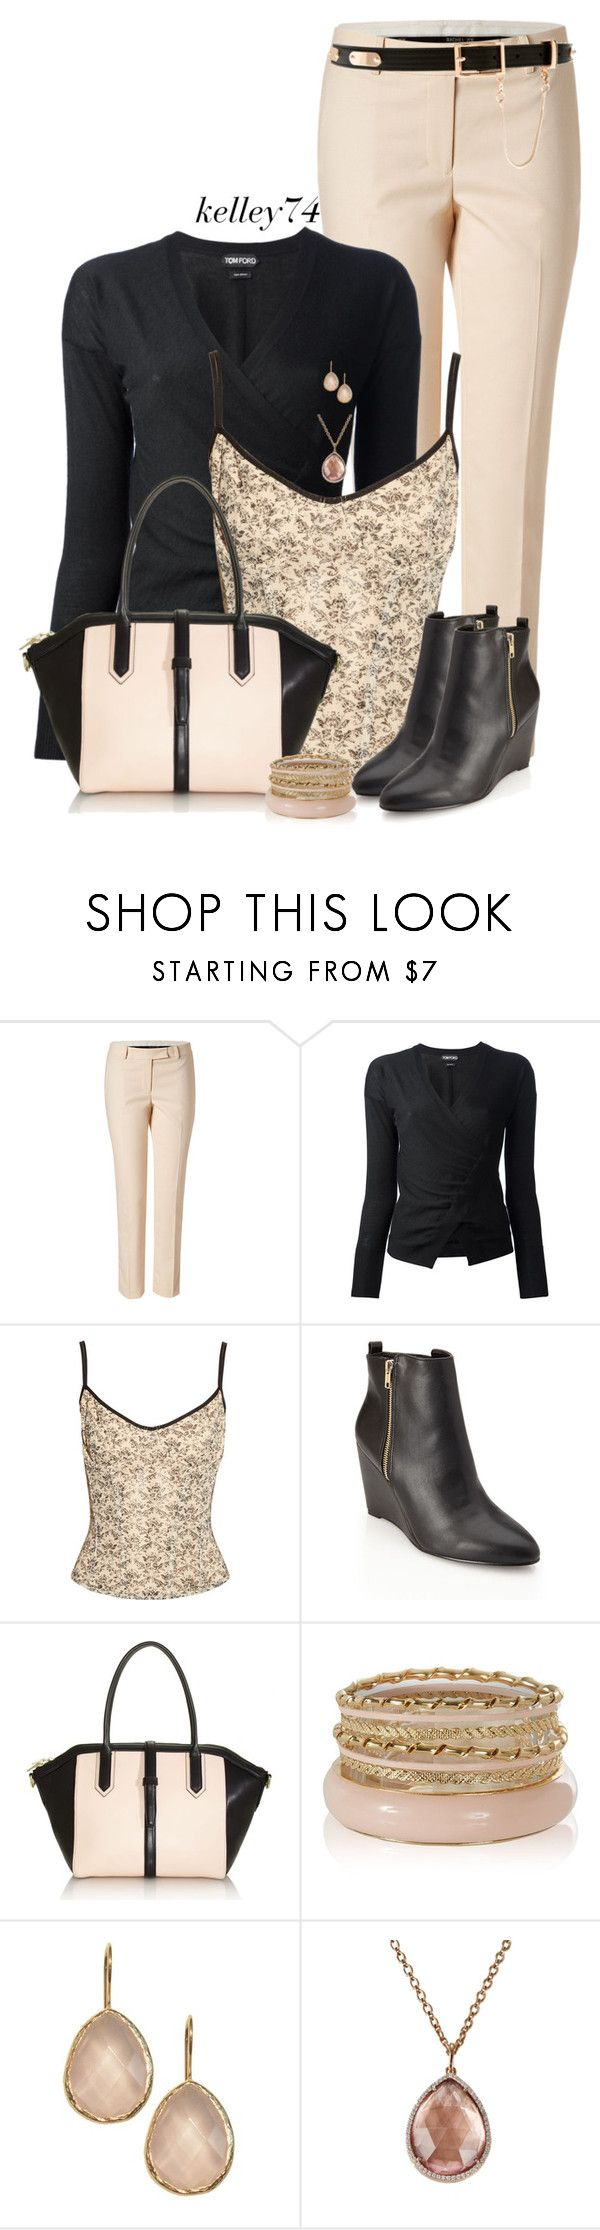 """""""Black Wedge Booties"""" by kelley74 ❤ liked on Polyvore featuring Rachel Zoe, Tom Ford, Yummie by Heather Thomson, Forever 21, J.Crew, Irene Neuwirth and ASOS"""